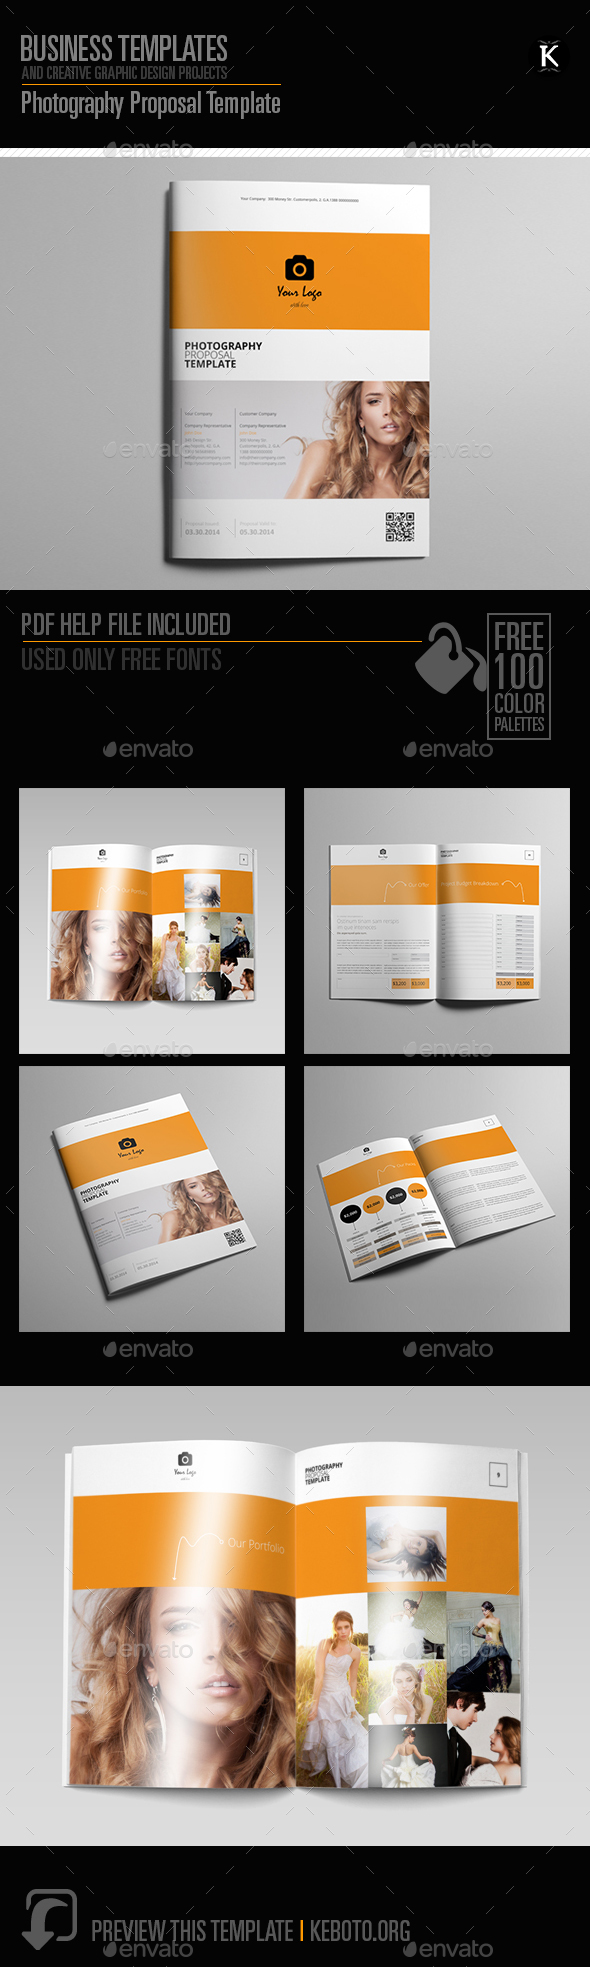 Photography Proposal Template - Proposals & Invoices Stationery